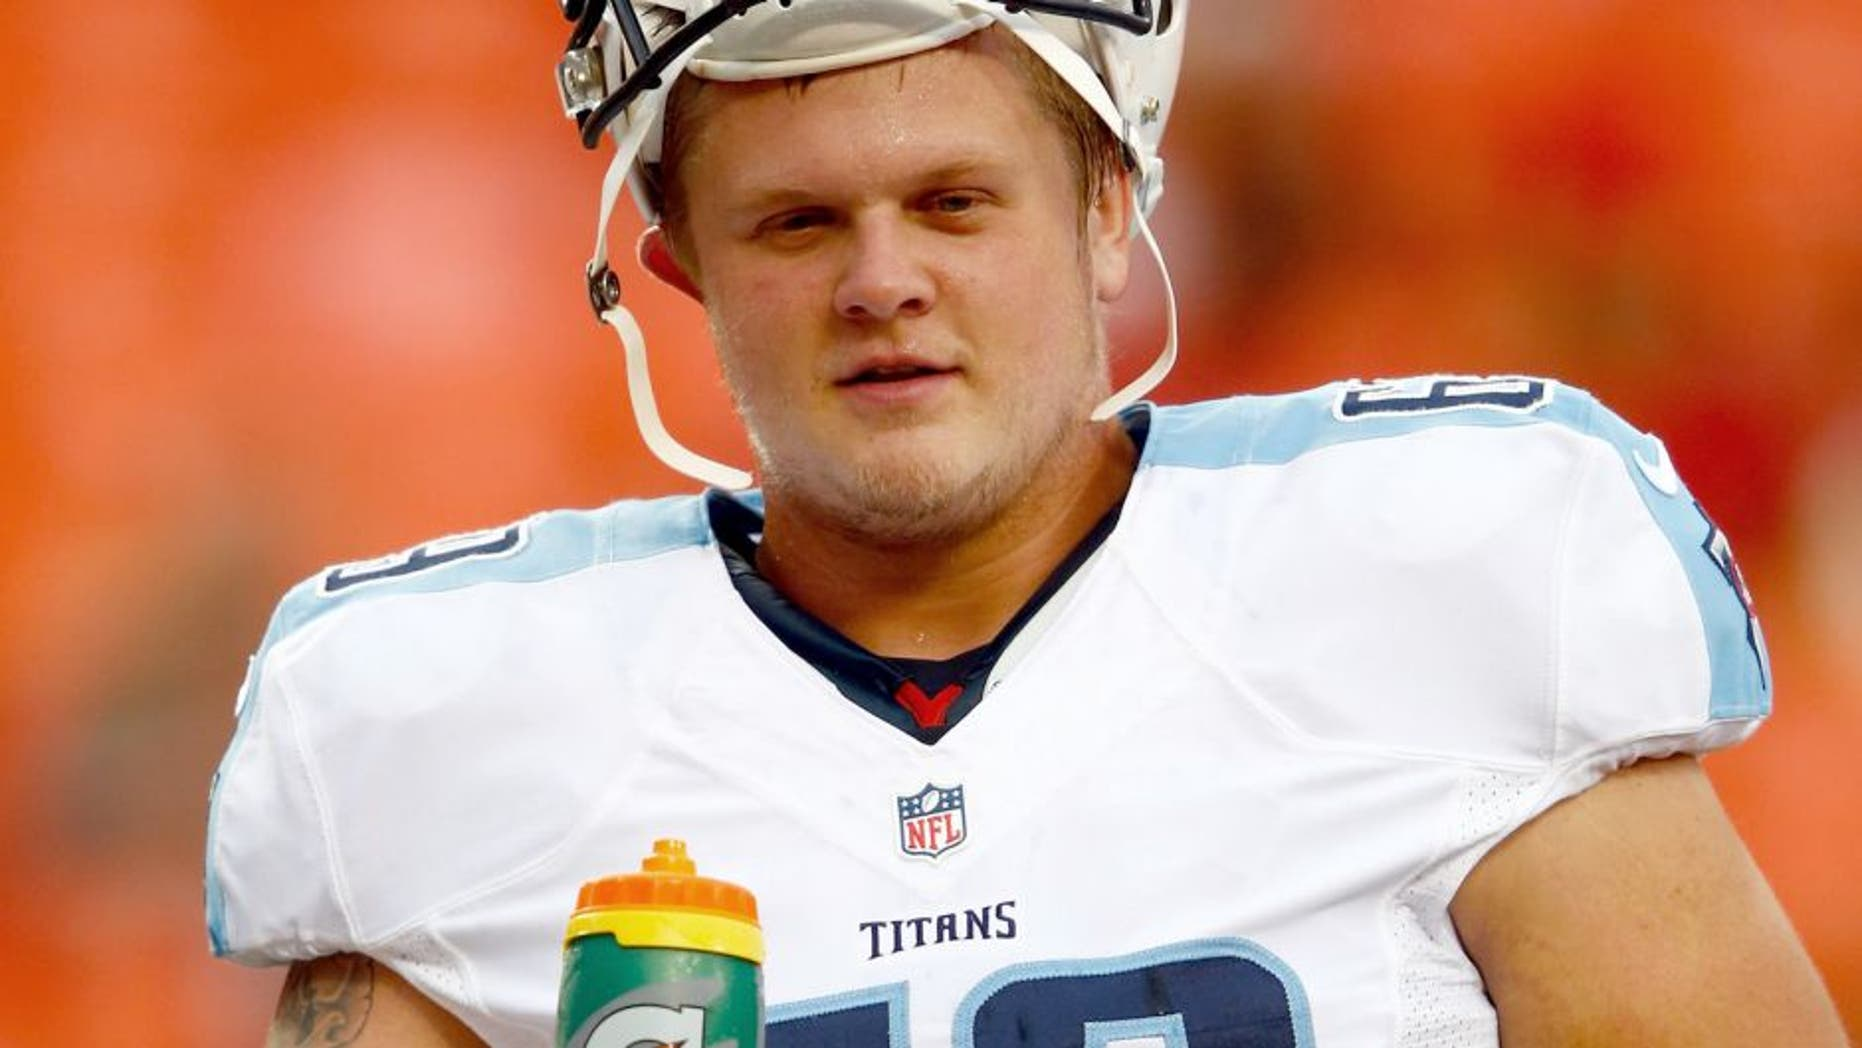 KANSAS CITY, MO - AUGUST 28: Center Andy Gallik #69 of the Tennessee Titans warms up prior to the preseason game against the Kansas City Chiefs at Arrowhead Stadium on August 28, 2015 in Kansas City, Missouri. (Photo by Jamie Squire/Getty Images)